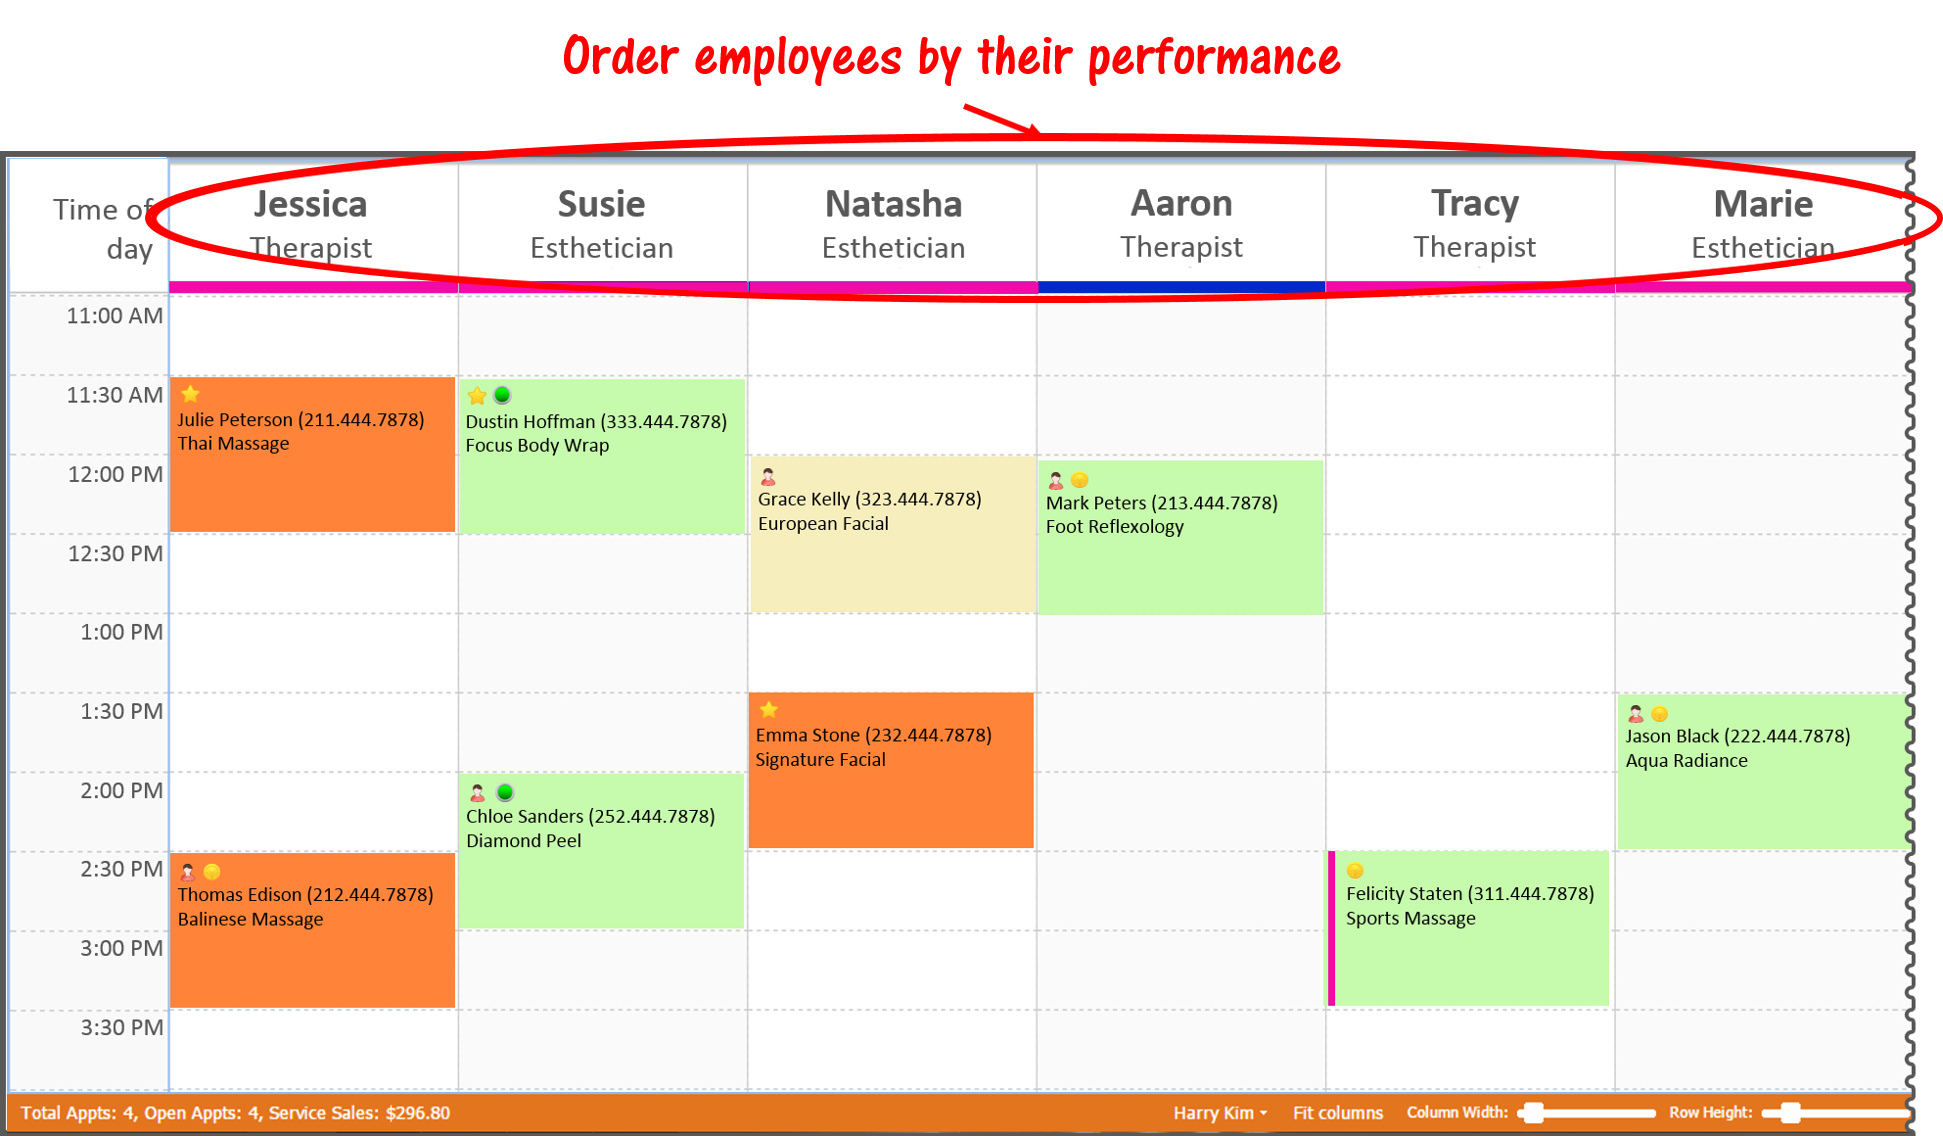 Sort Employees By Performance